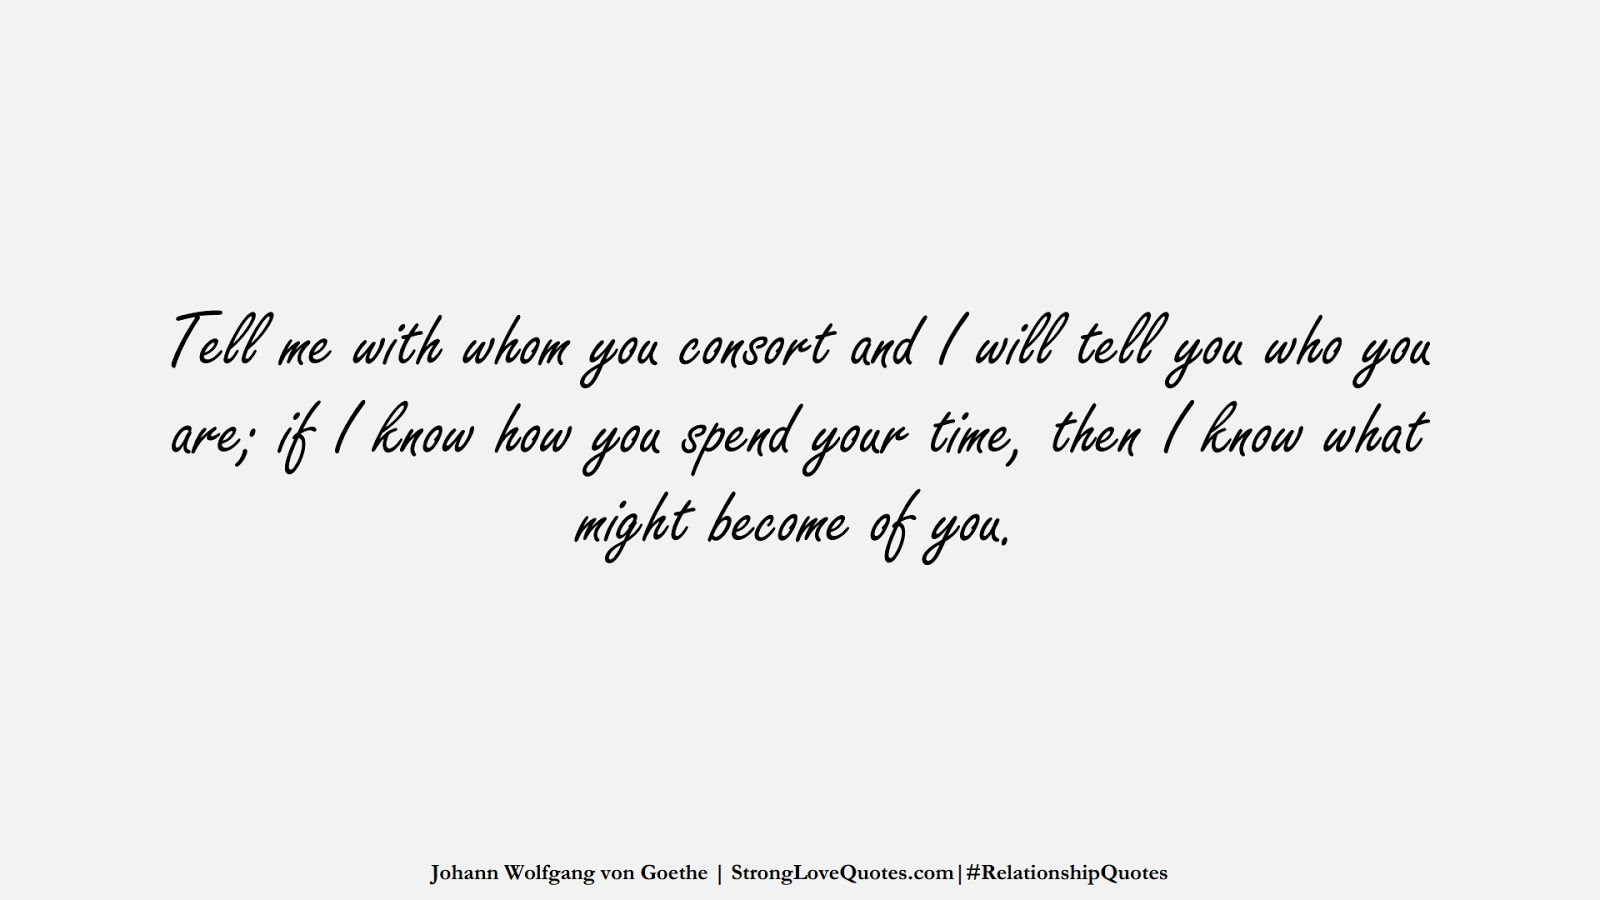 Tell me with whom you consort and I will tell you who you are; if I know how you spend your time, then I know what might become of you. (Johann Wolfgang von Goethe);  #RelationshipQuotes